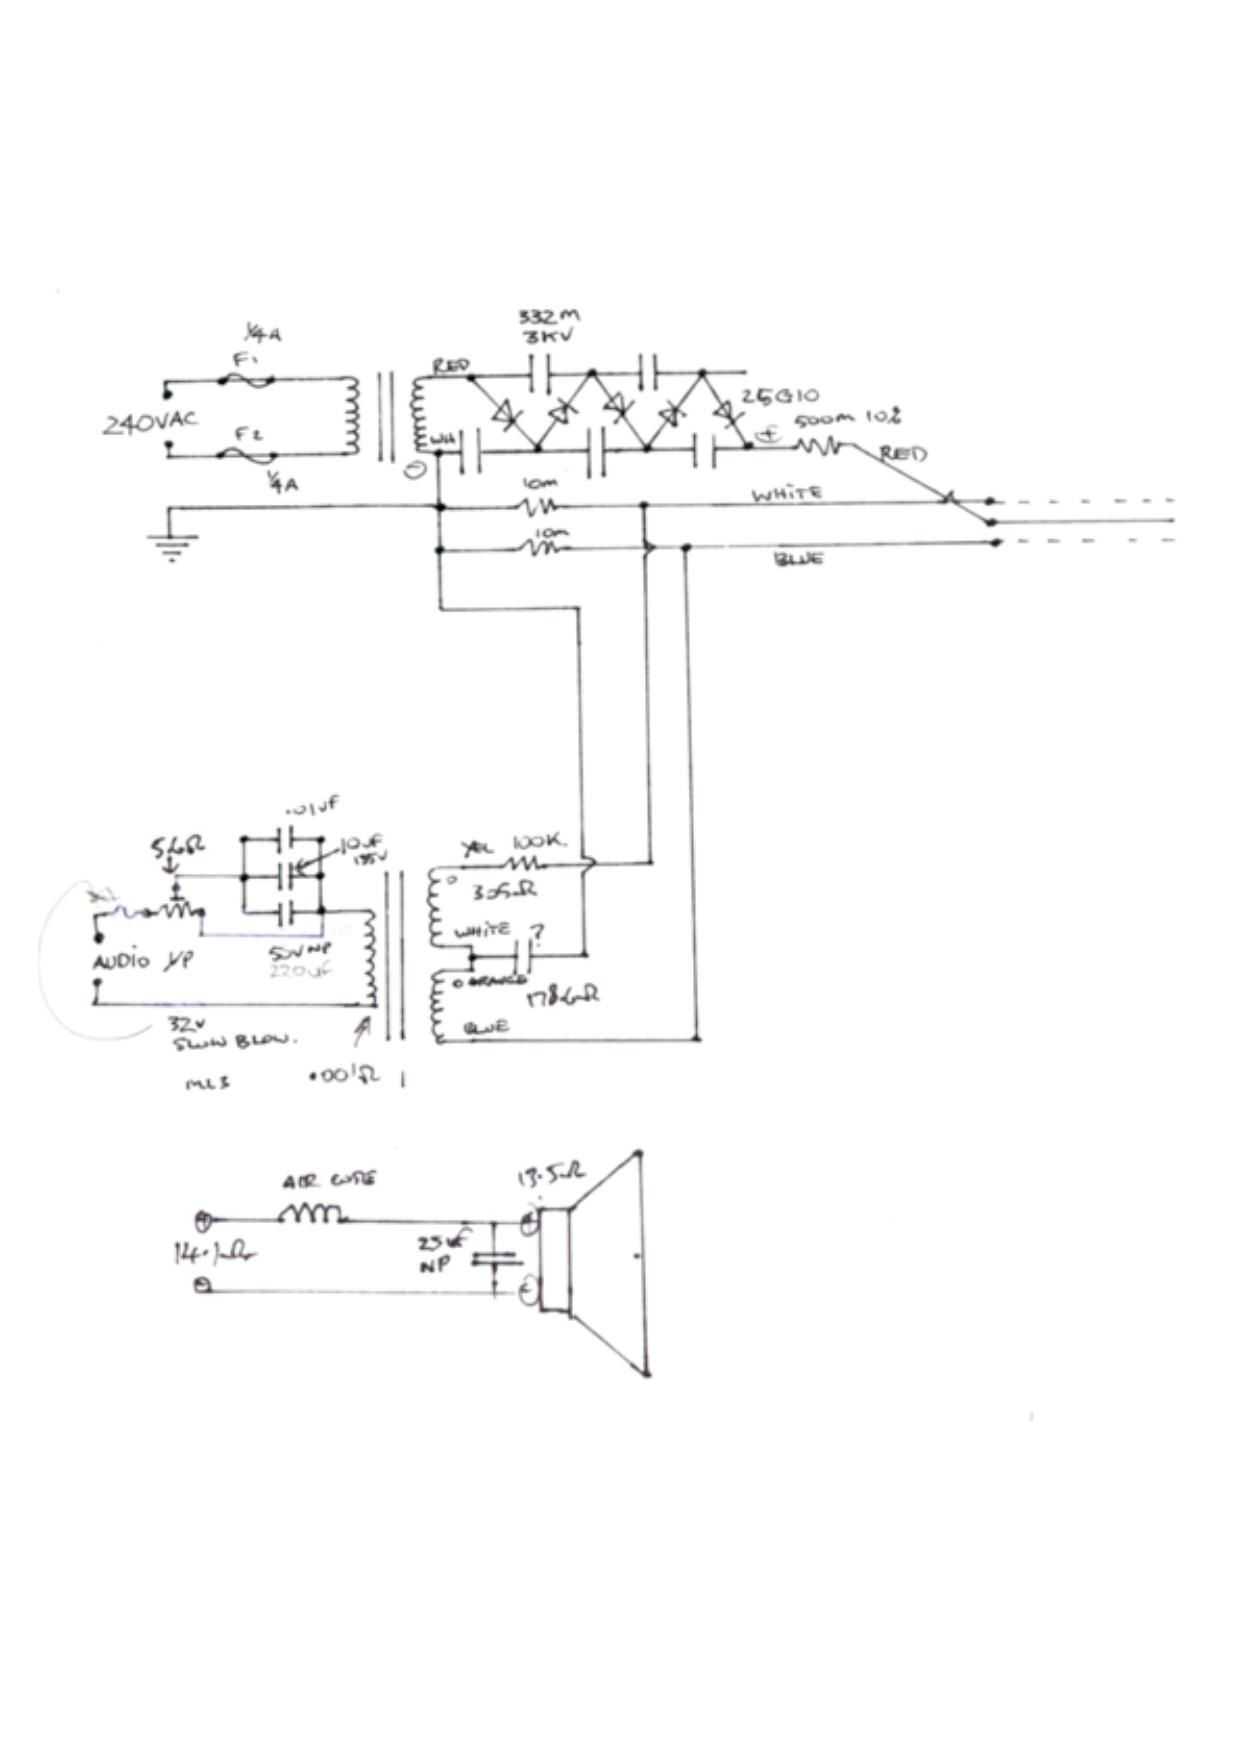 Acoustat Model 2 MH Schematic